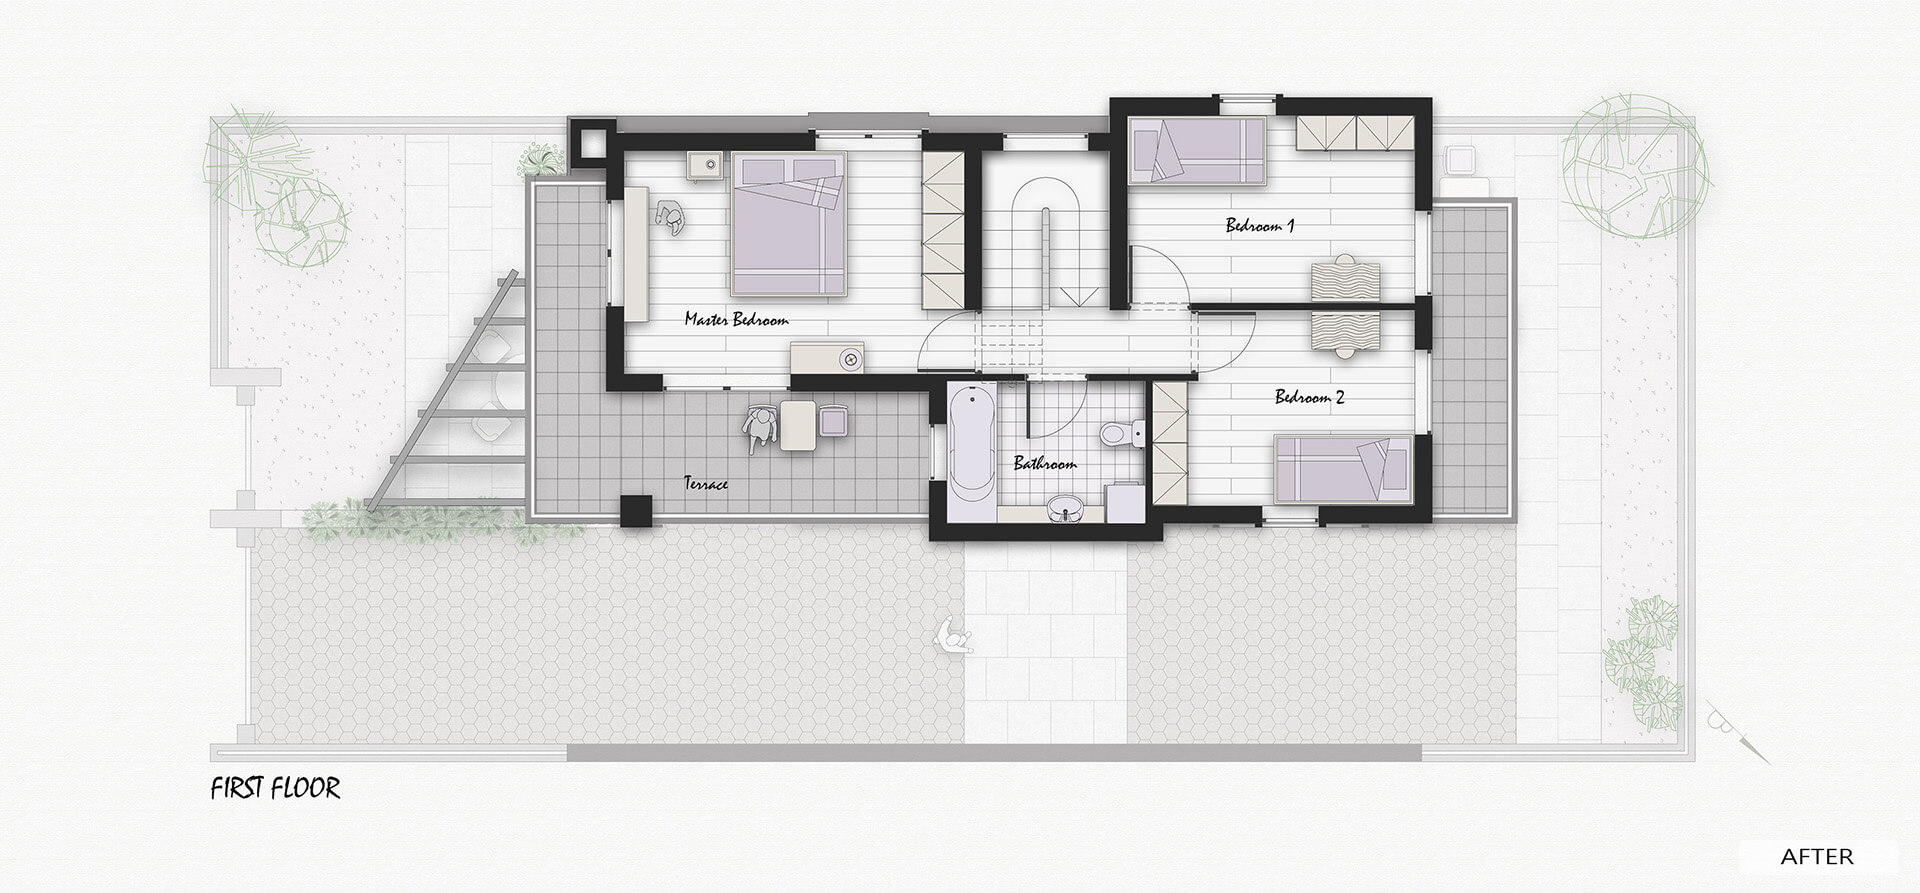 After-1ST FLOOR PLAN